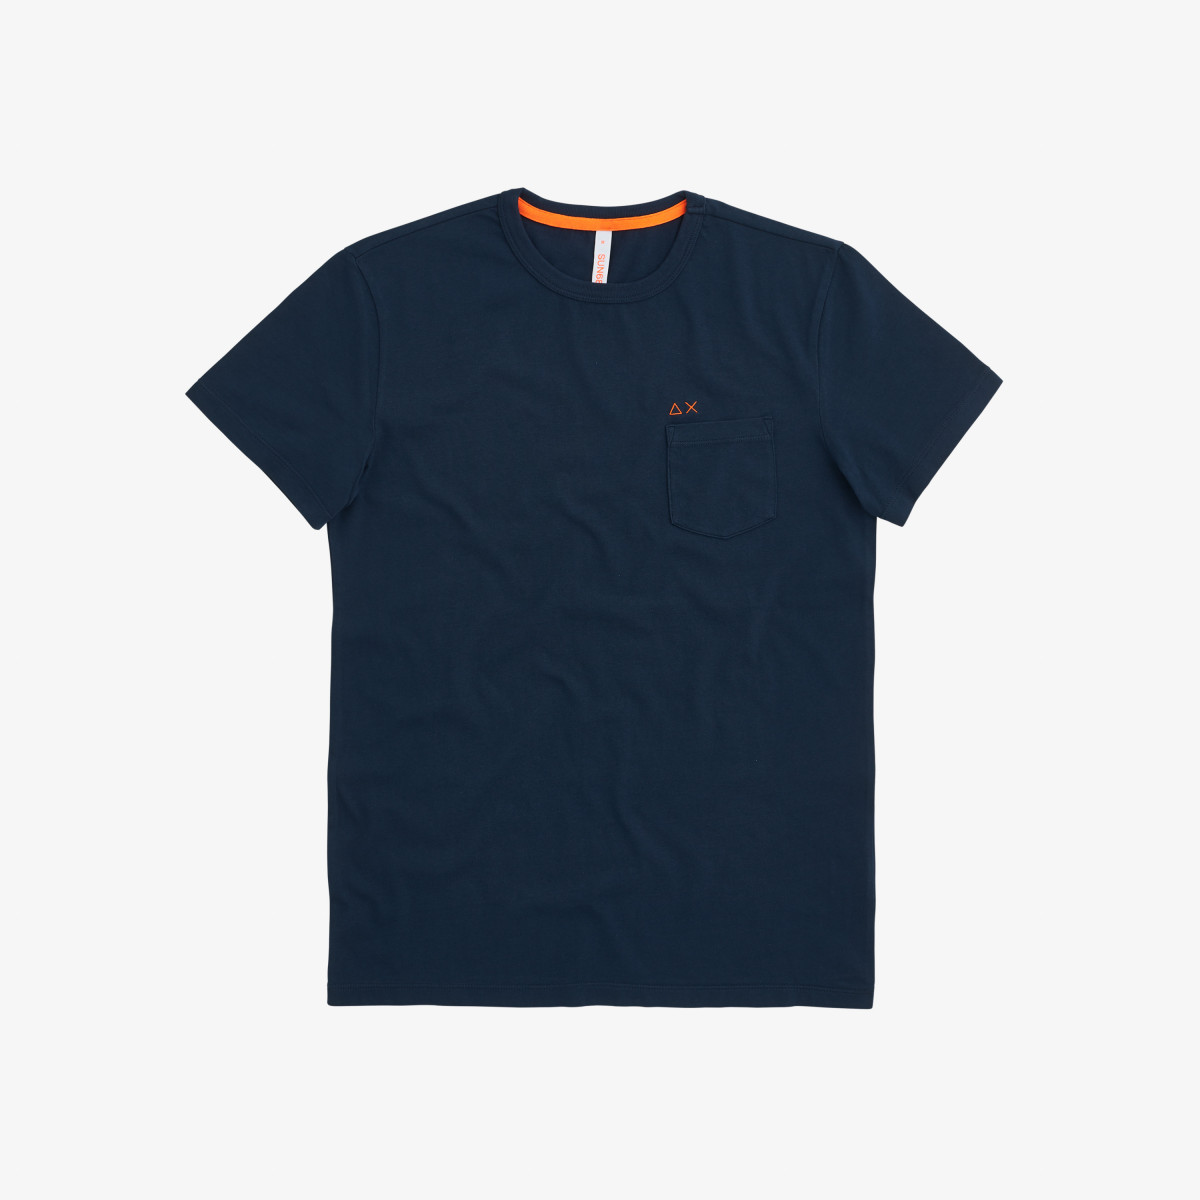 T-SHIRT ROUND SOLID POCKET NAVY BLUE